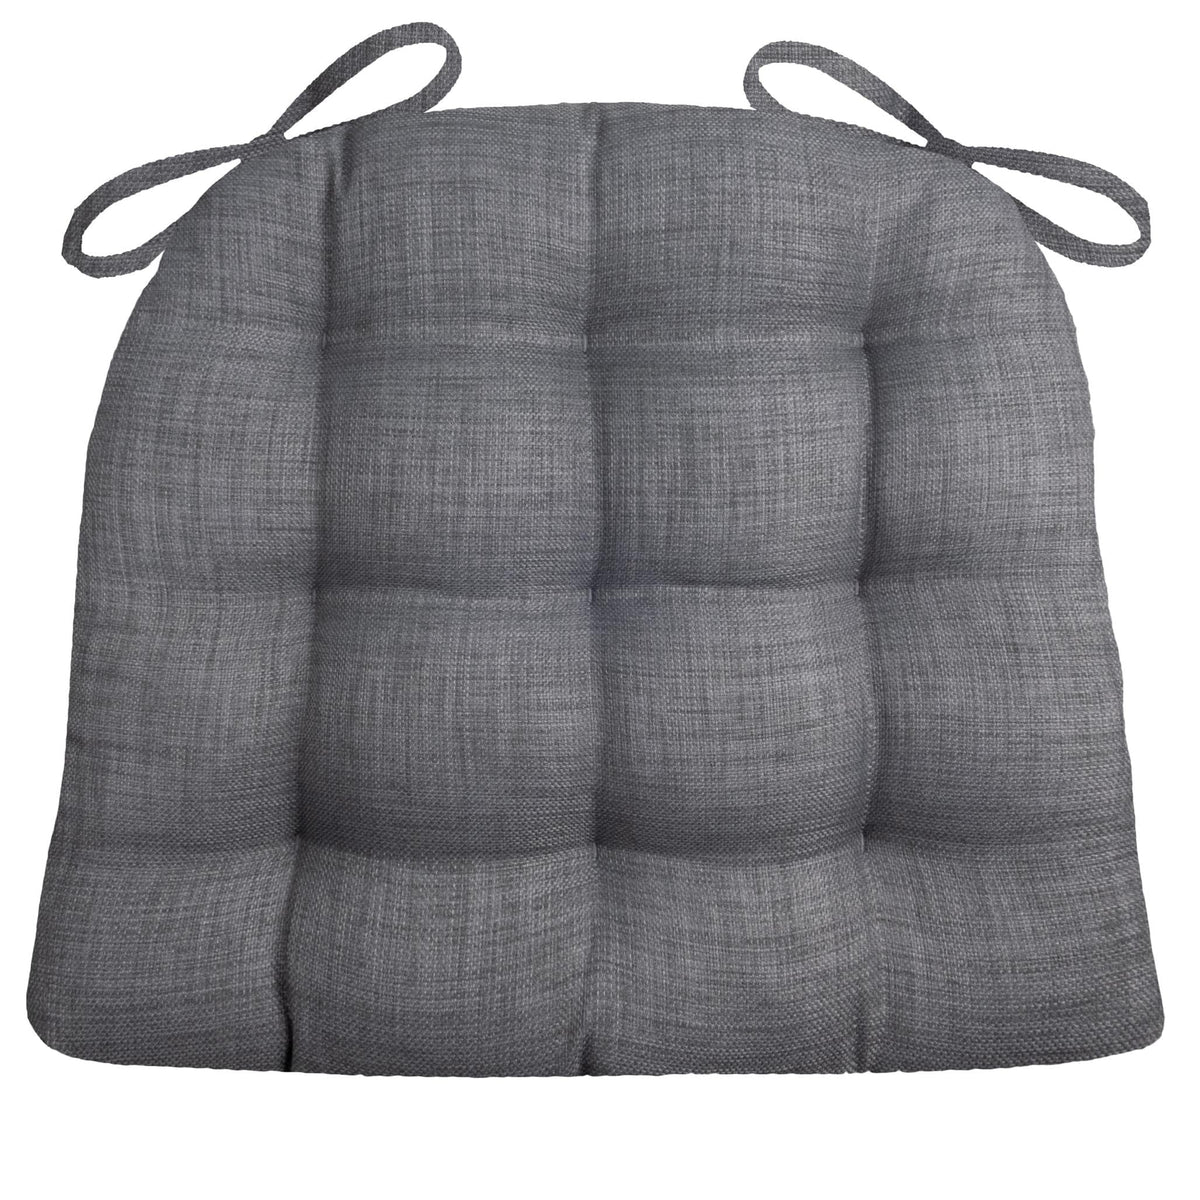 Rave Graphite Grey Indoor Outdoor Dining Chair Pads Patio Cushions